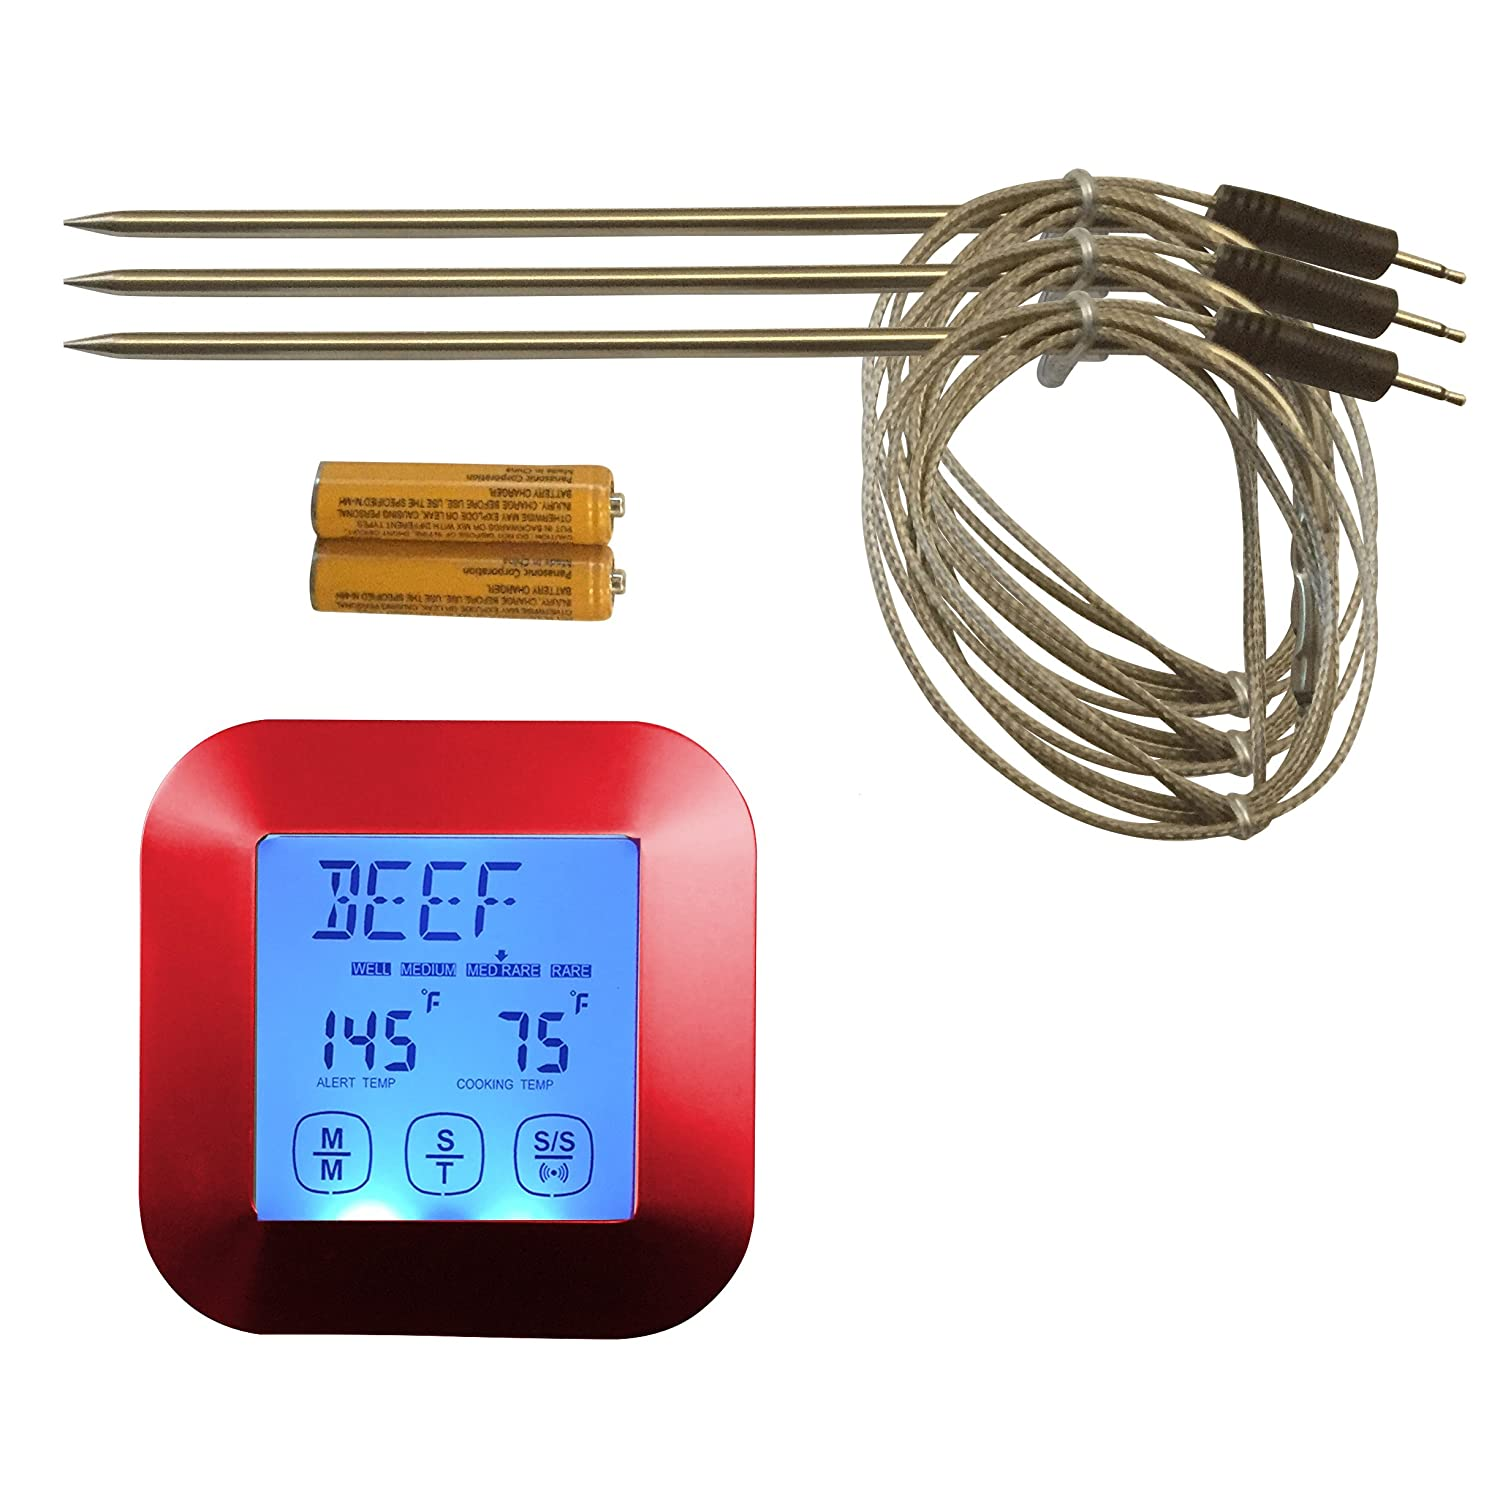 Great Digital Meat Thermometer - with Bonus 3 Temperature Probes!!! Best for Oven, Grill, BBQ, Smoker, in Water & can even work with Candy! Impress your friends and family, cook perfectly every time! by The Clever Cooking Company COMINHKPR150528